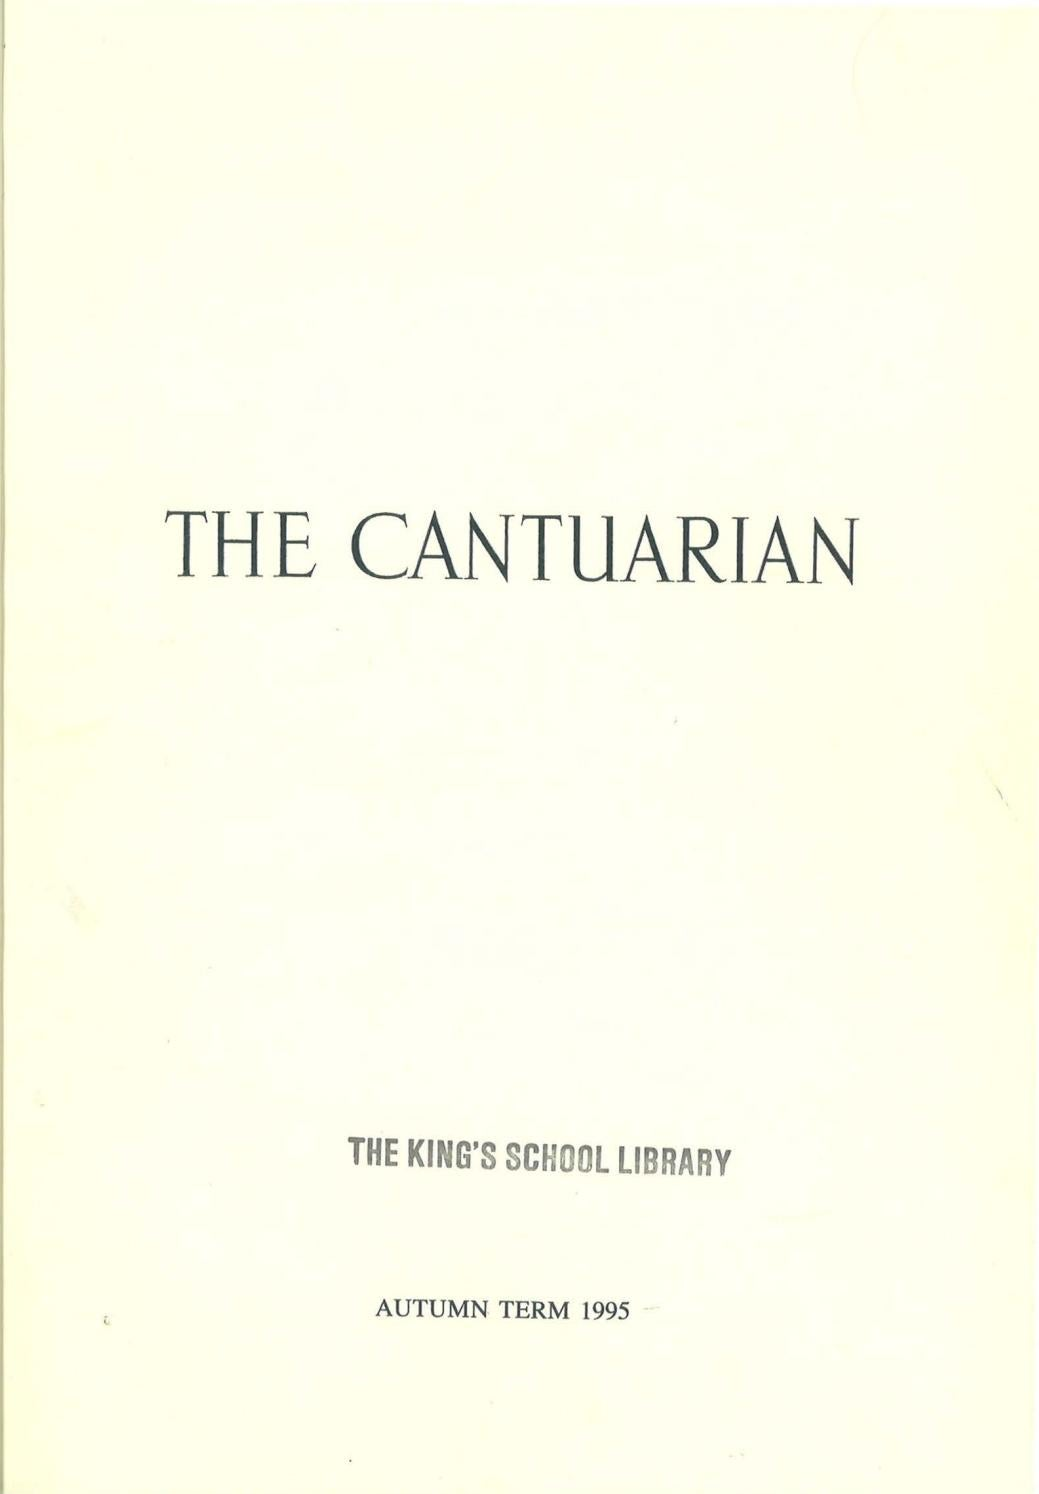 The Cantuarian Autumn 1995 - Summer 1996 by OKS Association